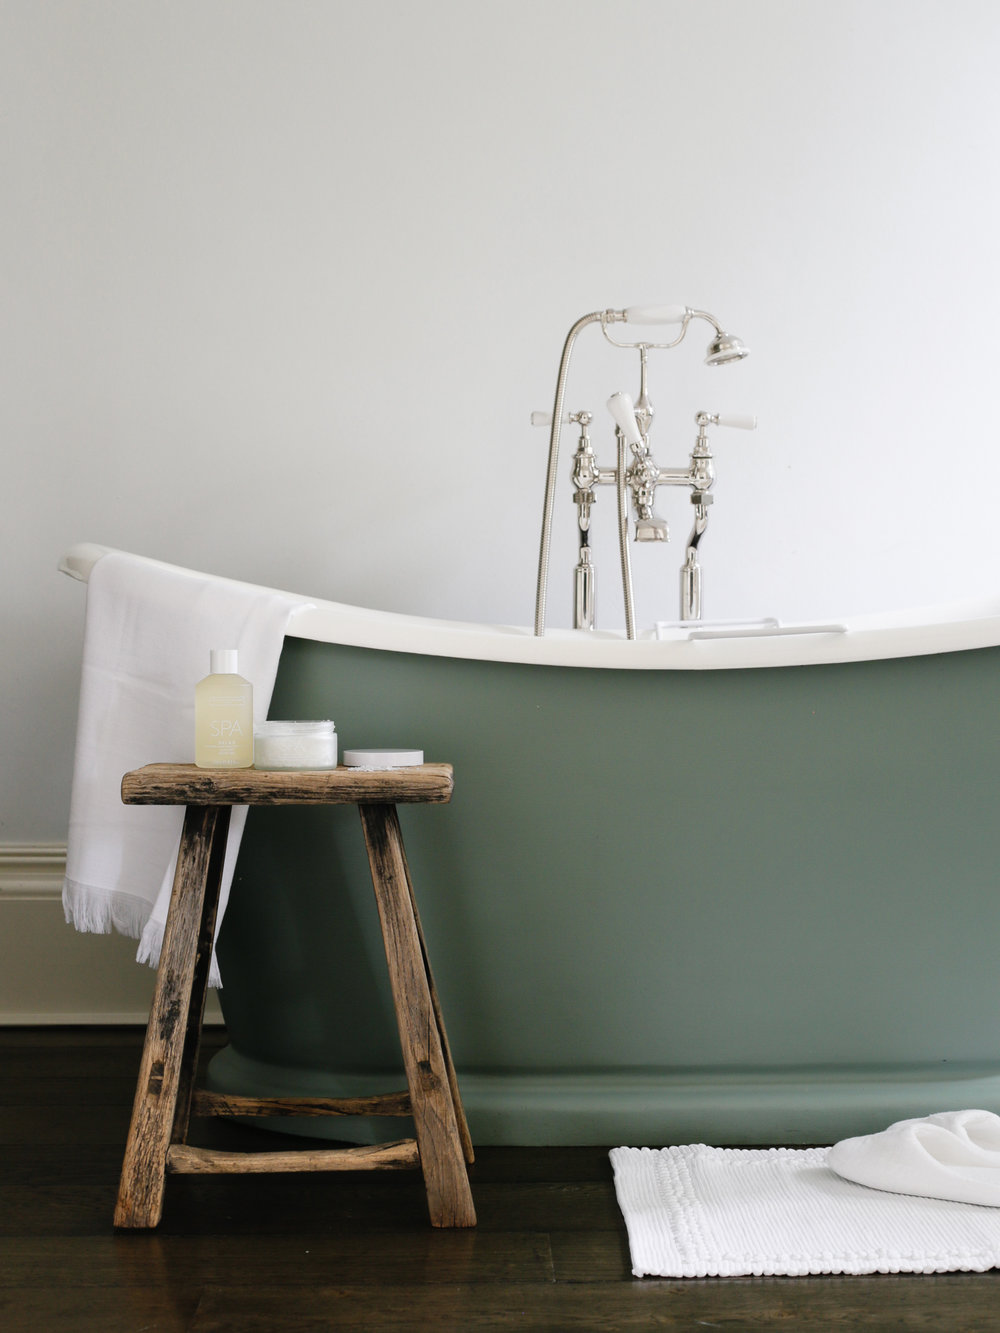 Luxury hotel bathroom at No 38 The Park | Design Hunter